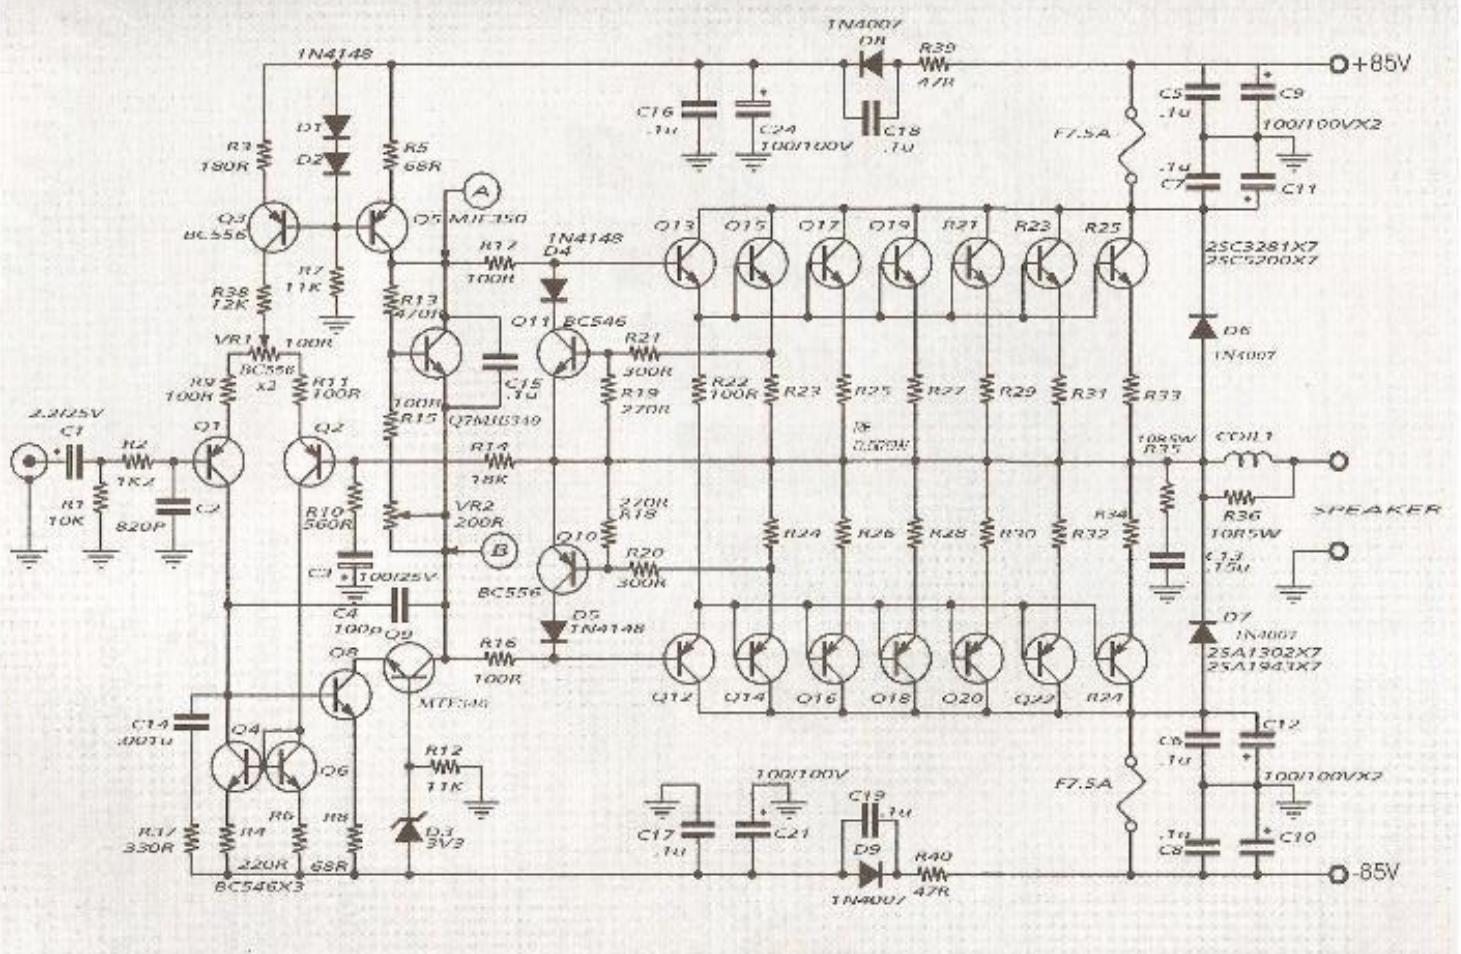 Amplifiers Circuit Diagram | 1000 Watts Power Amplifier Schematic Diagrams Wiring Library